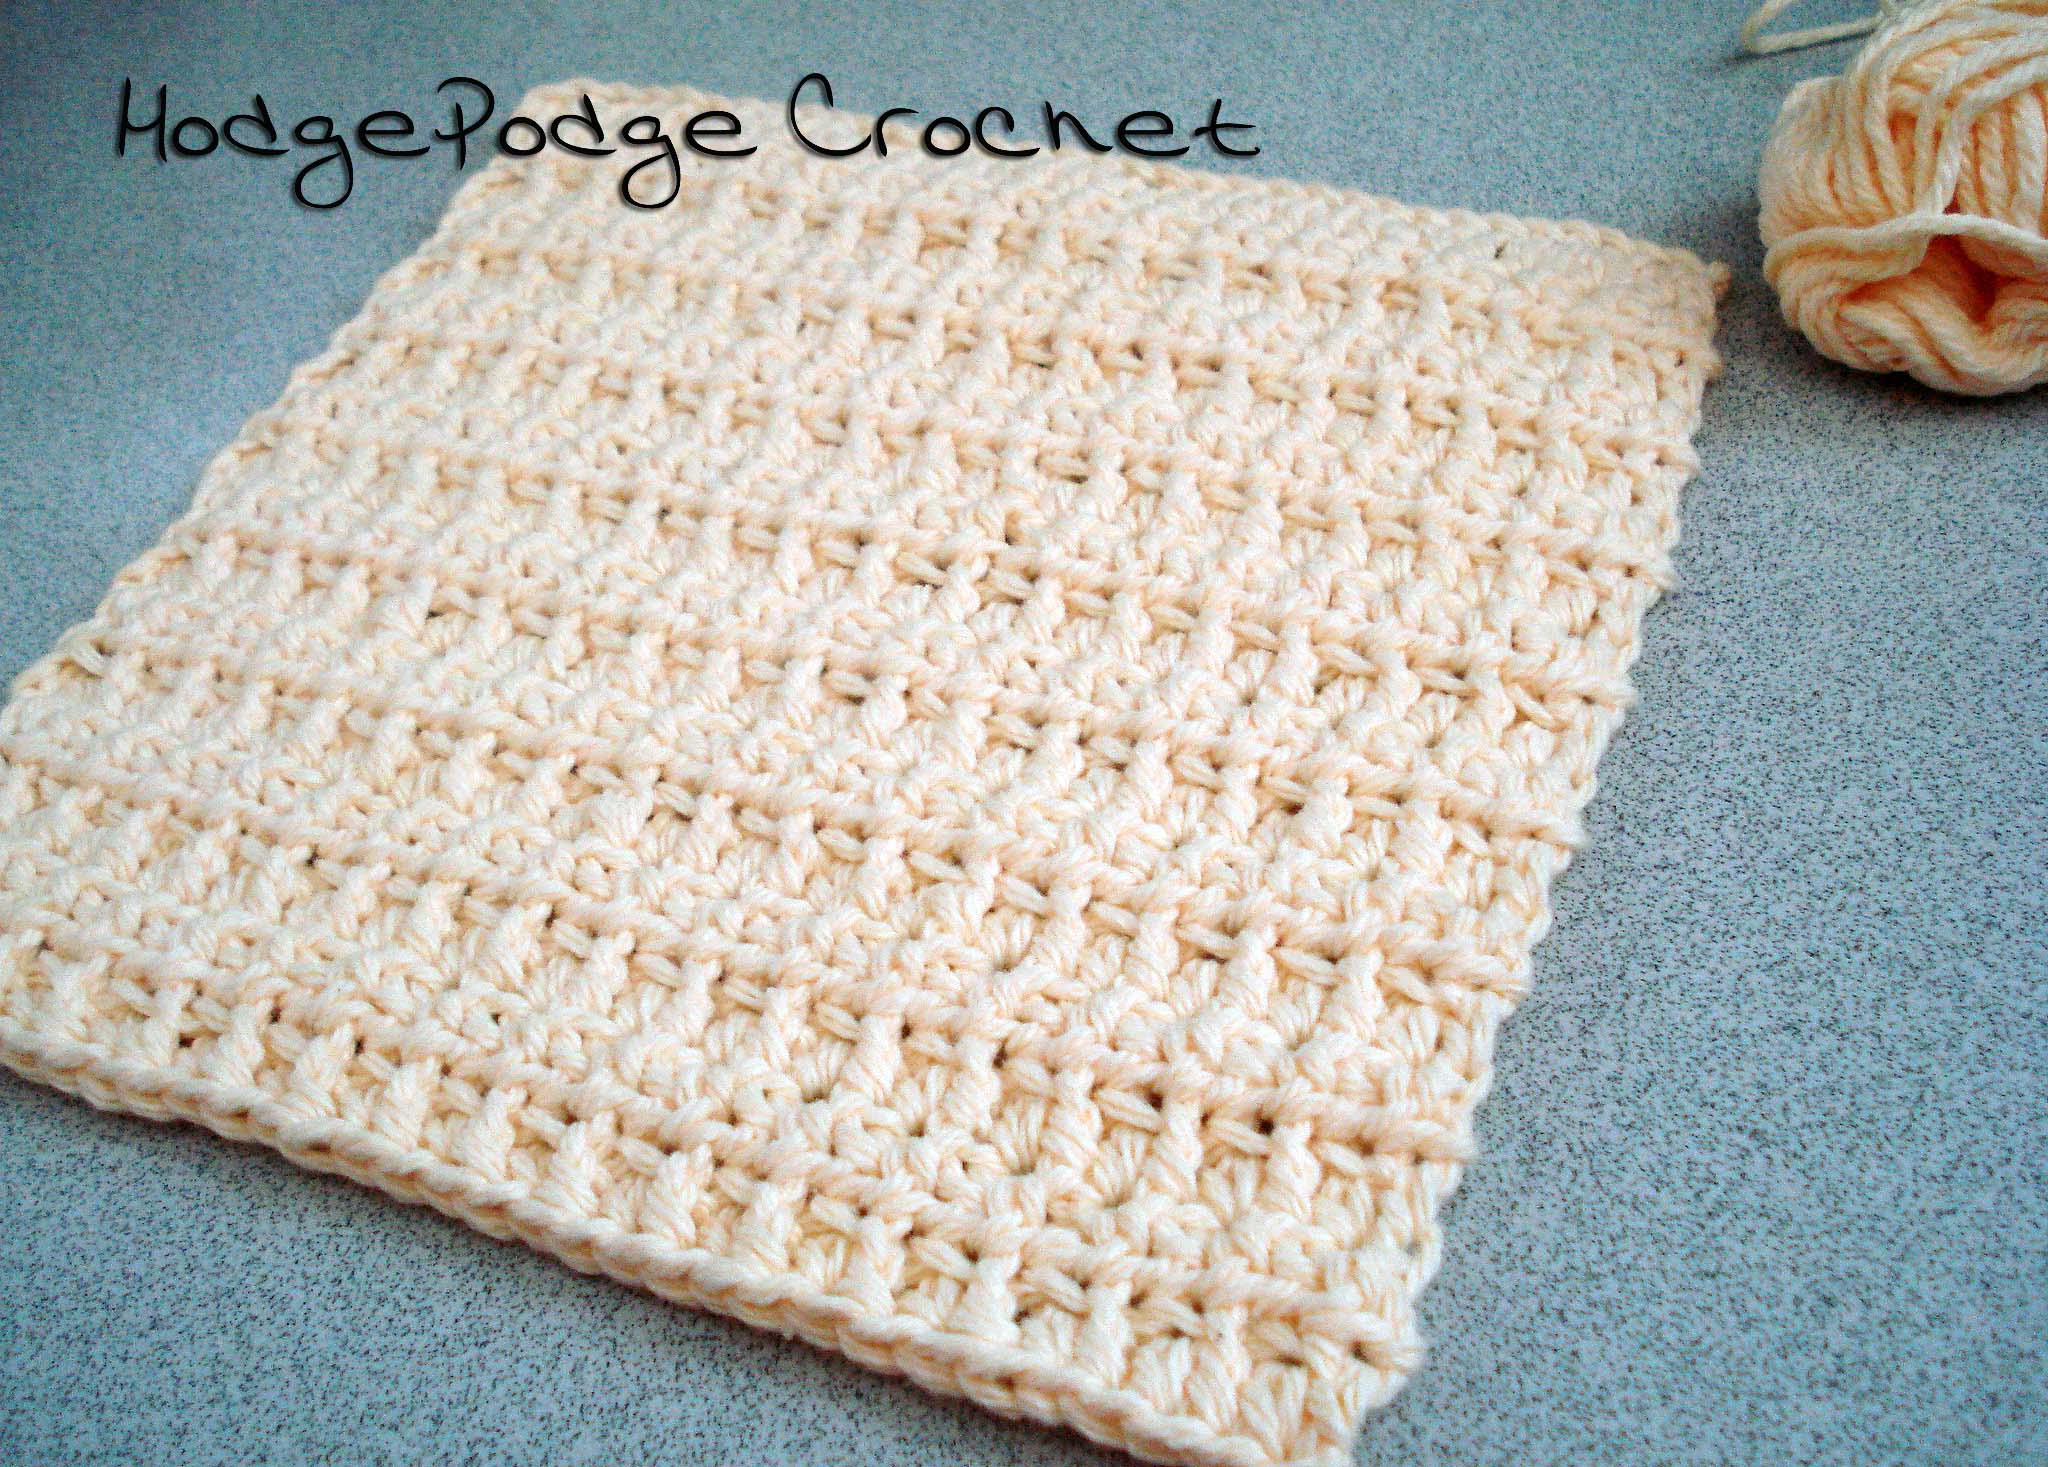 Washcloths for Charity | HodgePodge Crochet